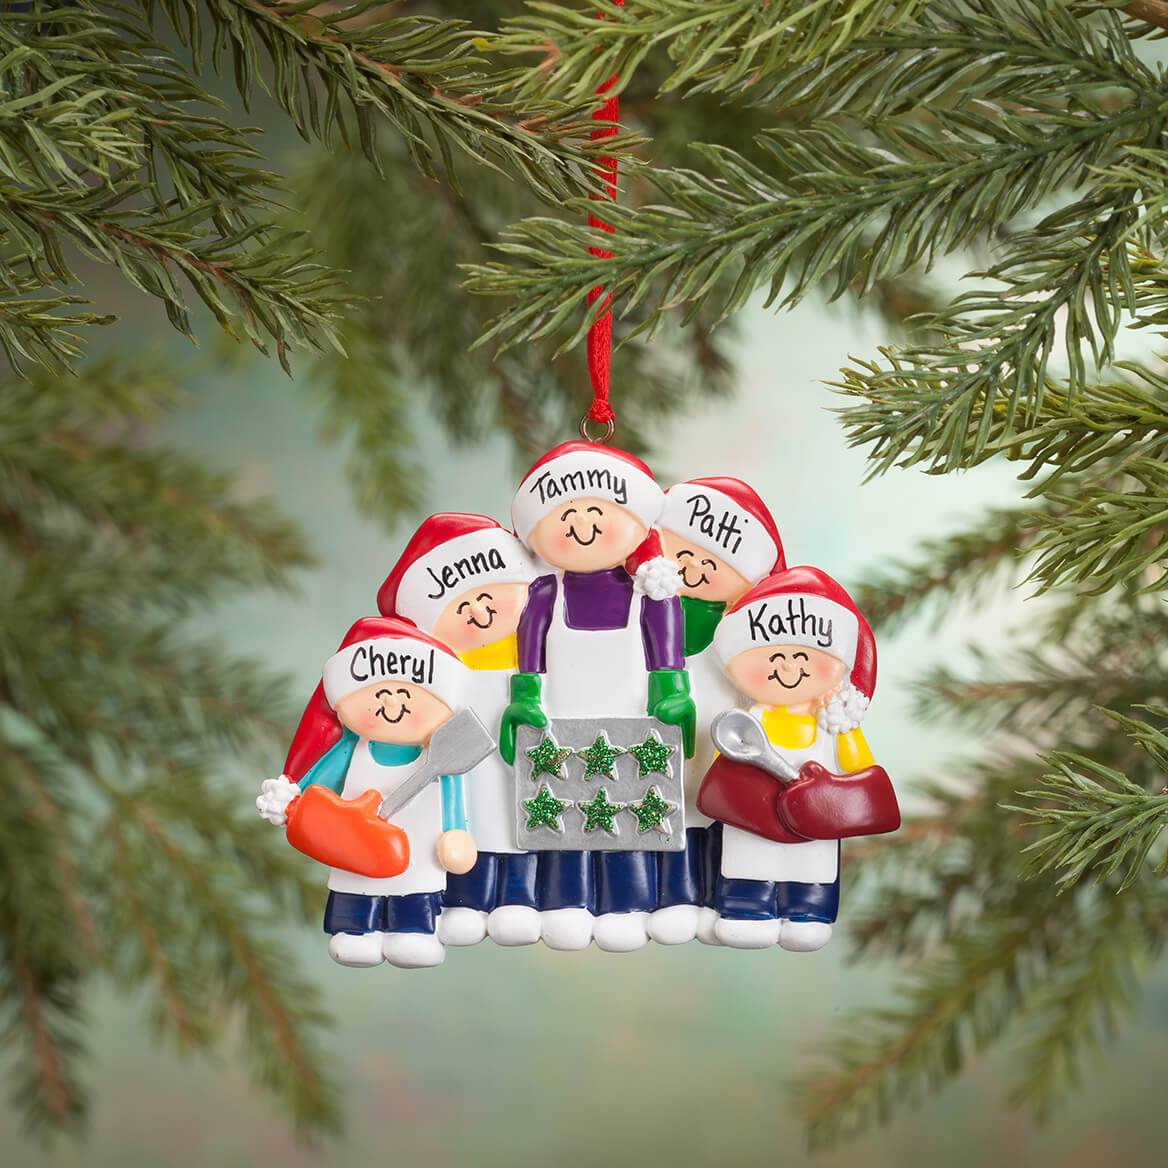 Personalized Family Cookie Baking Ornament-365696